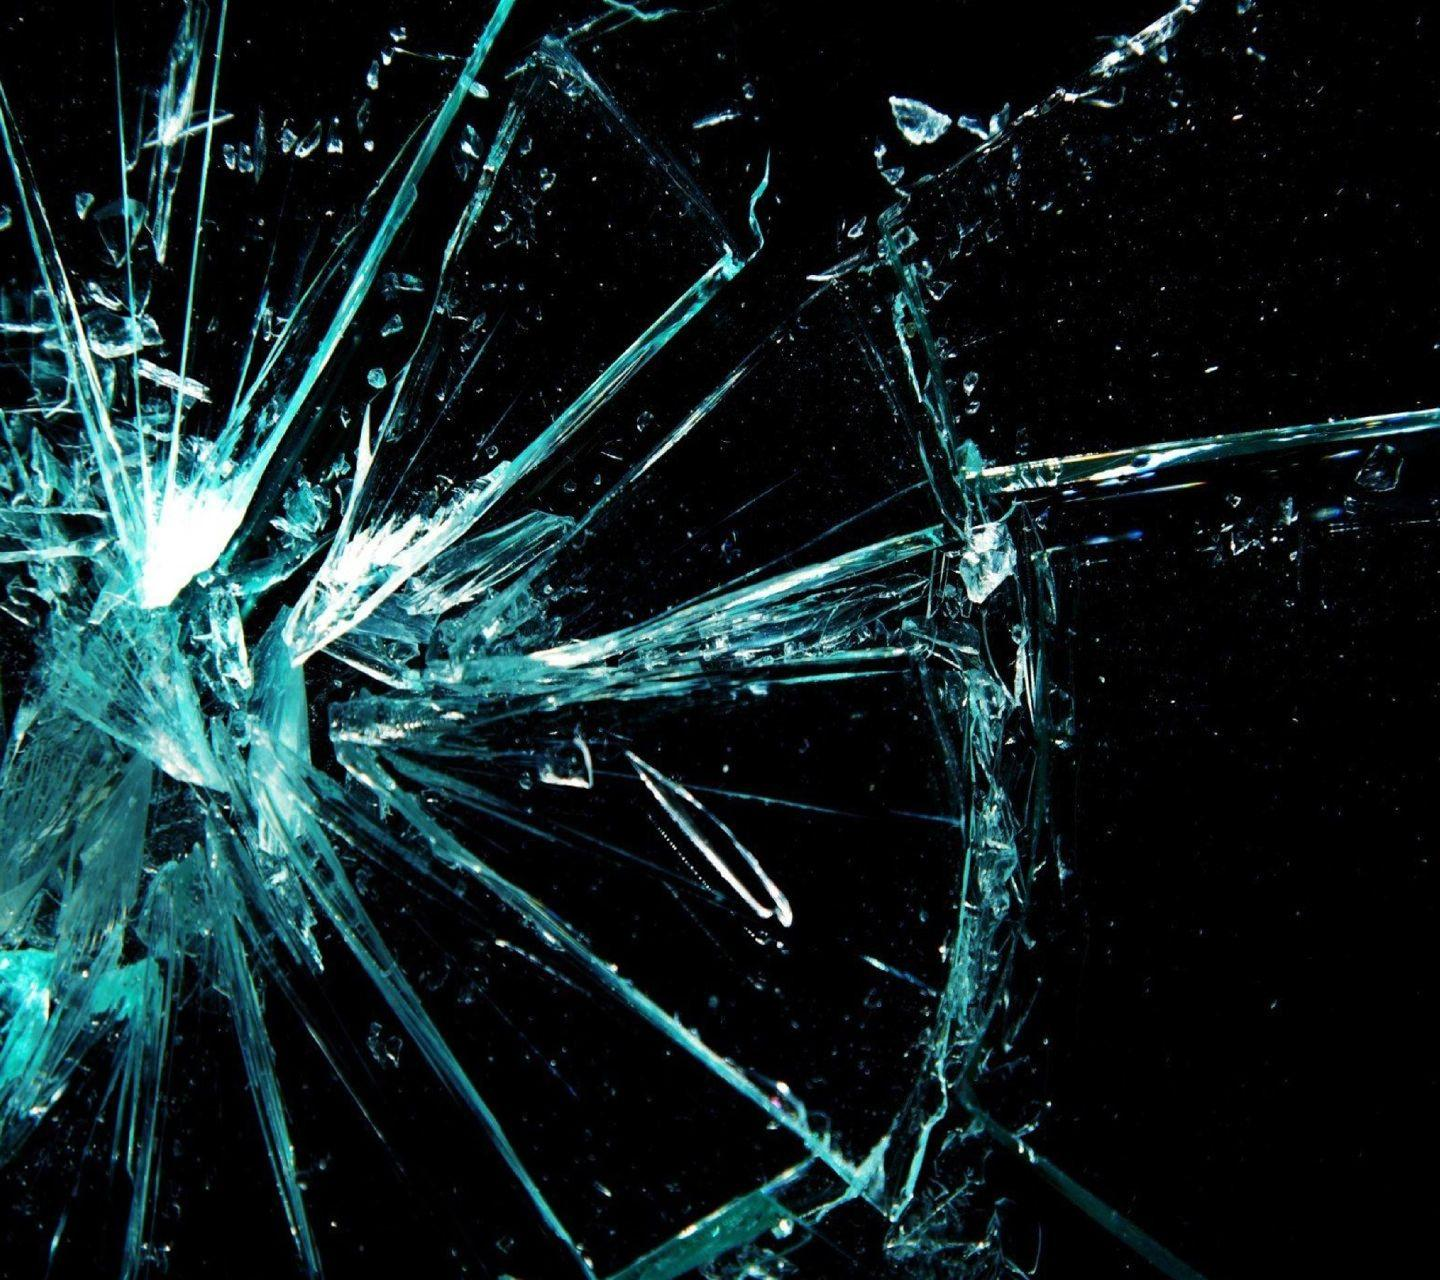 Broken Screen Wallpaper: Cracked Screens Wallpapers